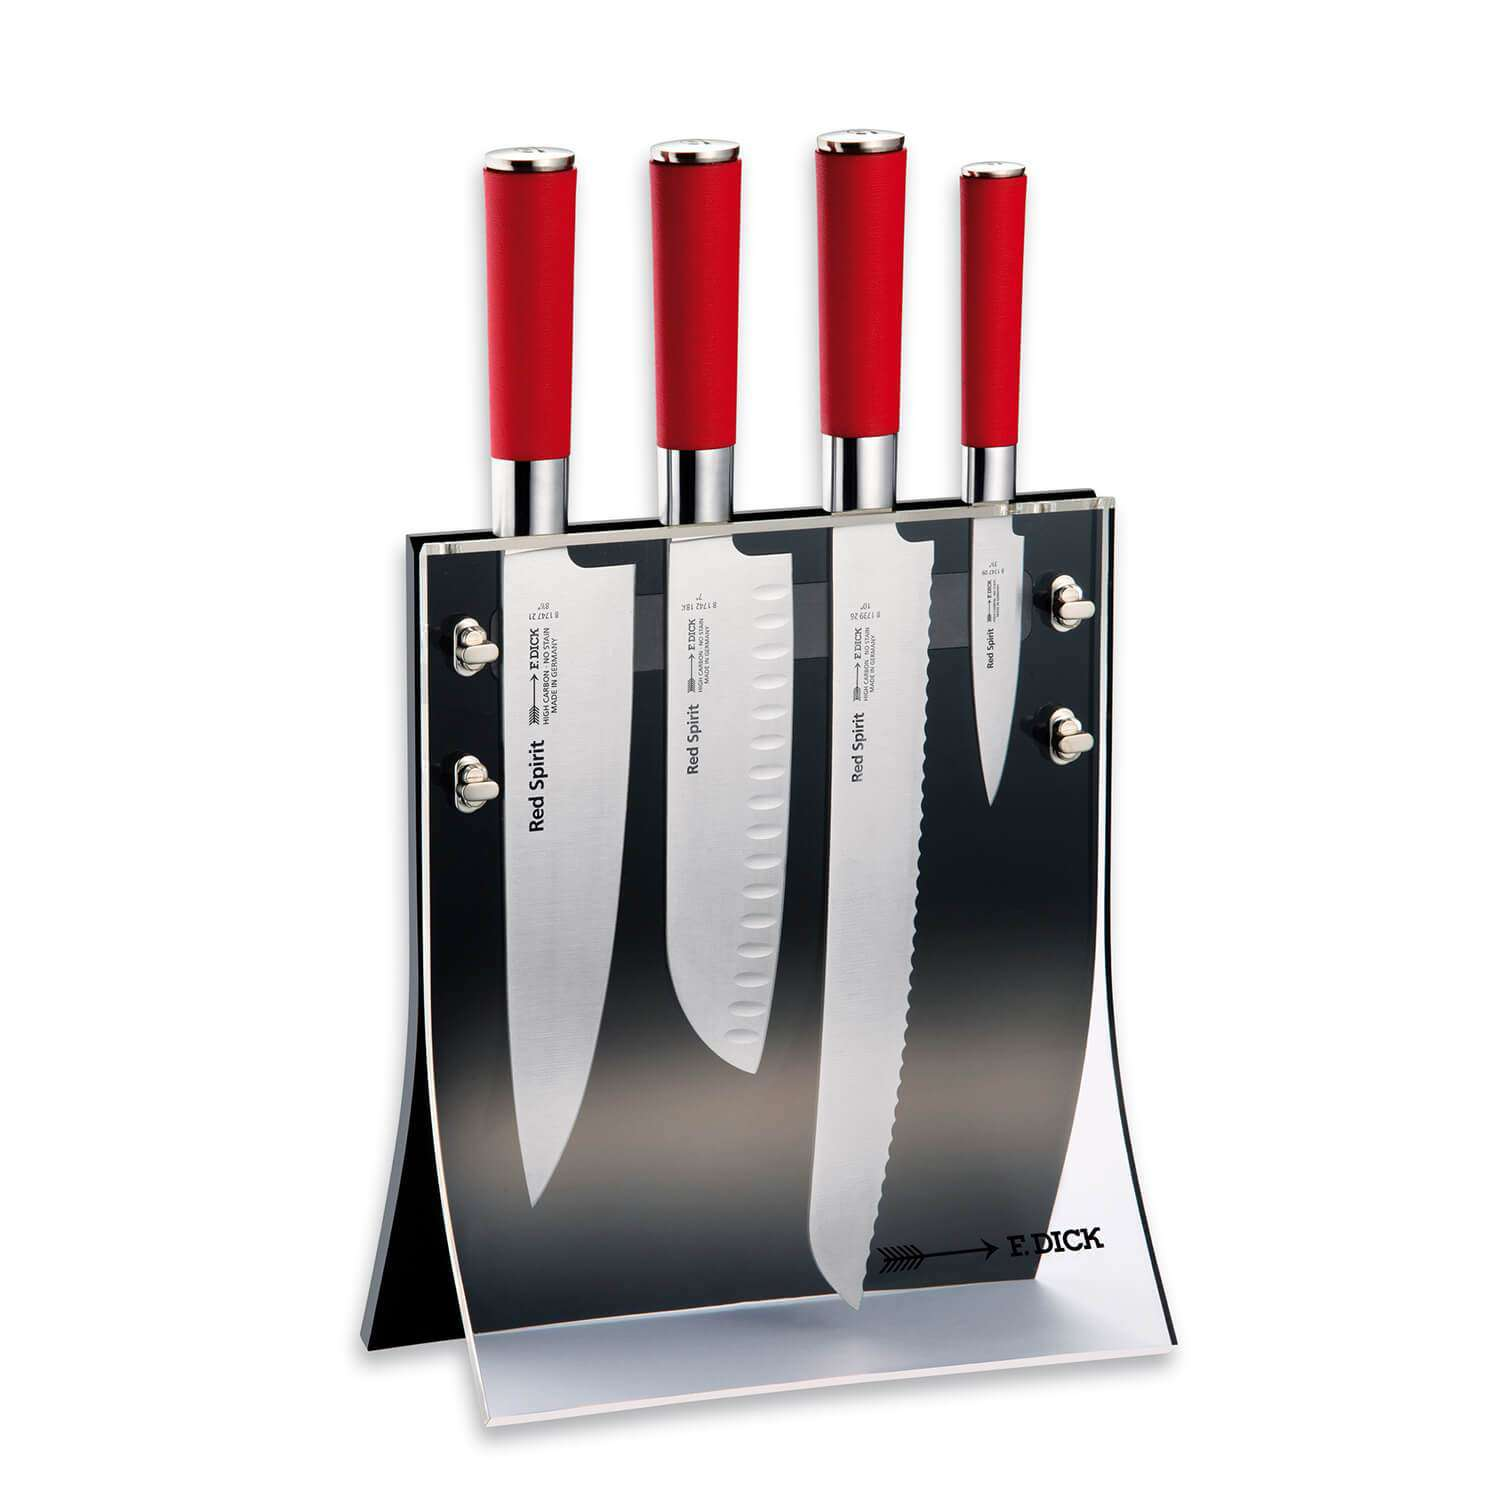 F DICK Red Spirit Knife Block 4 Pc - House of Knives